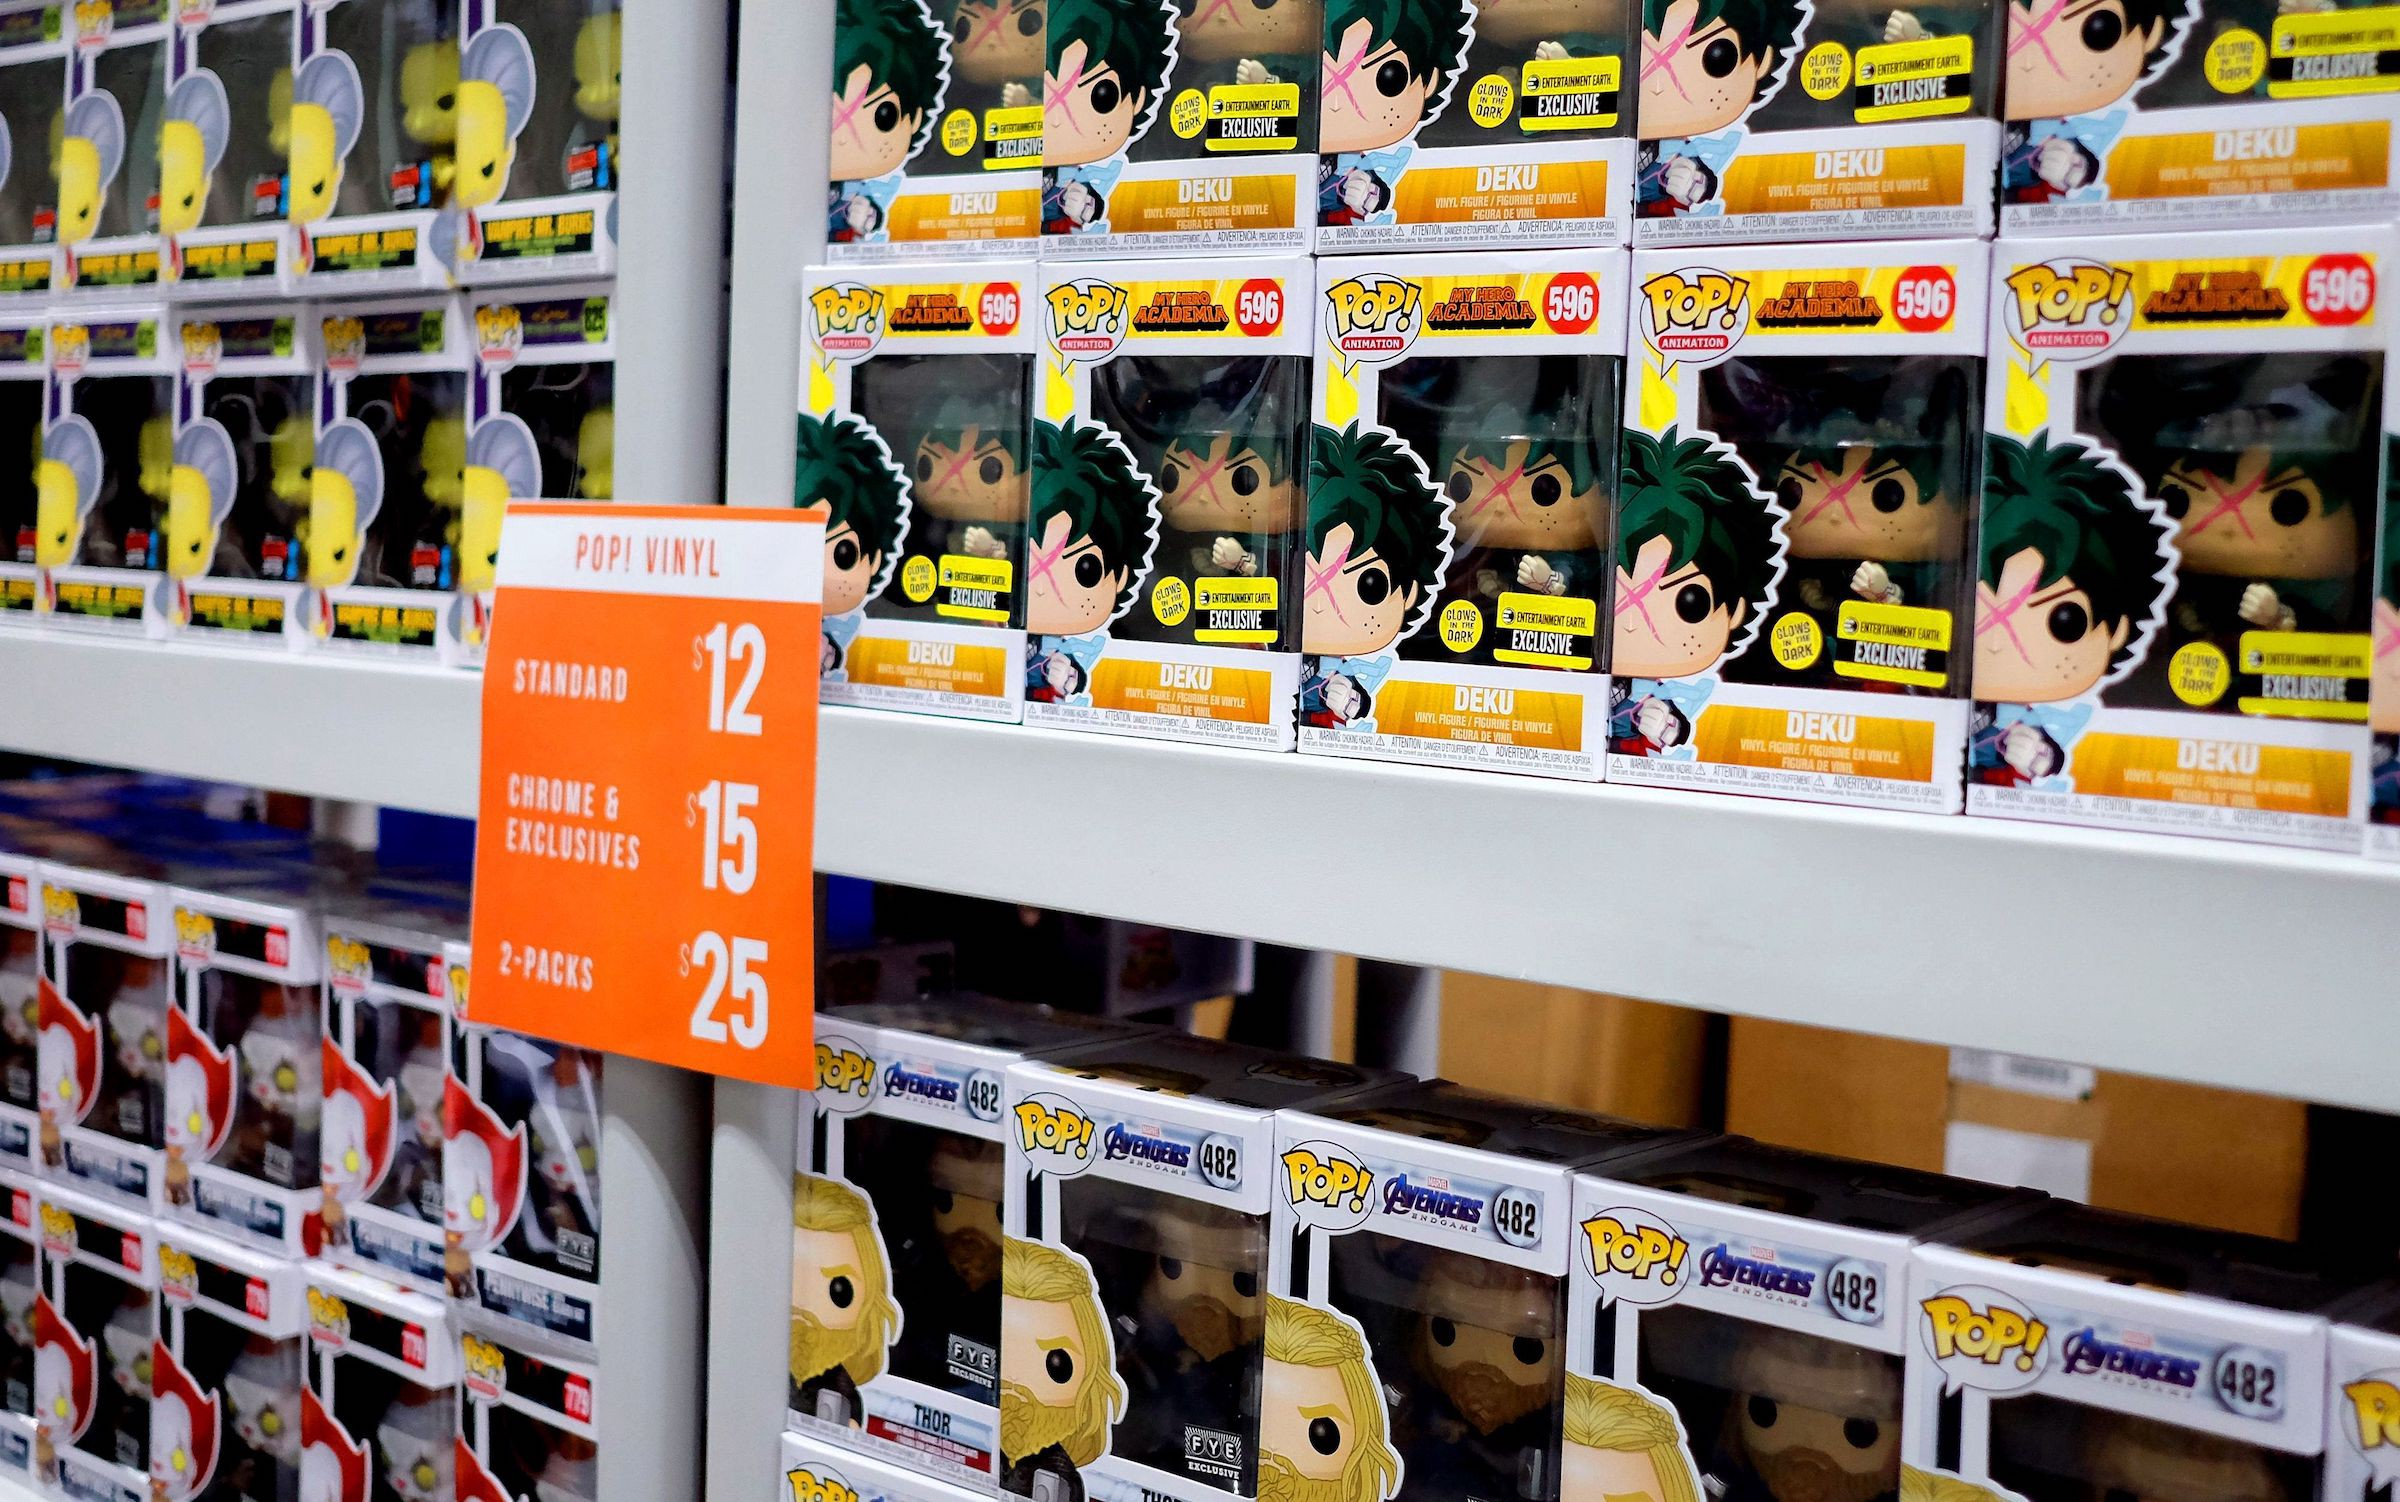 Boxes of Funko Pop figurines on shelves.